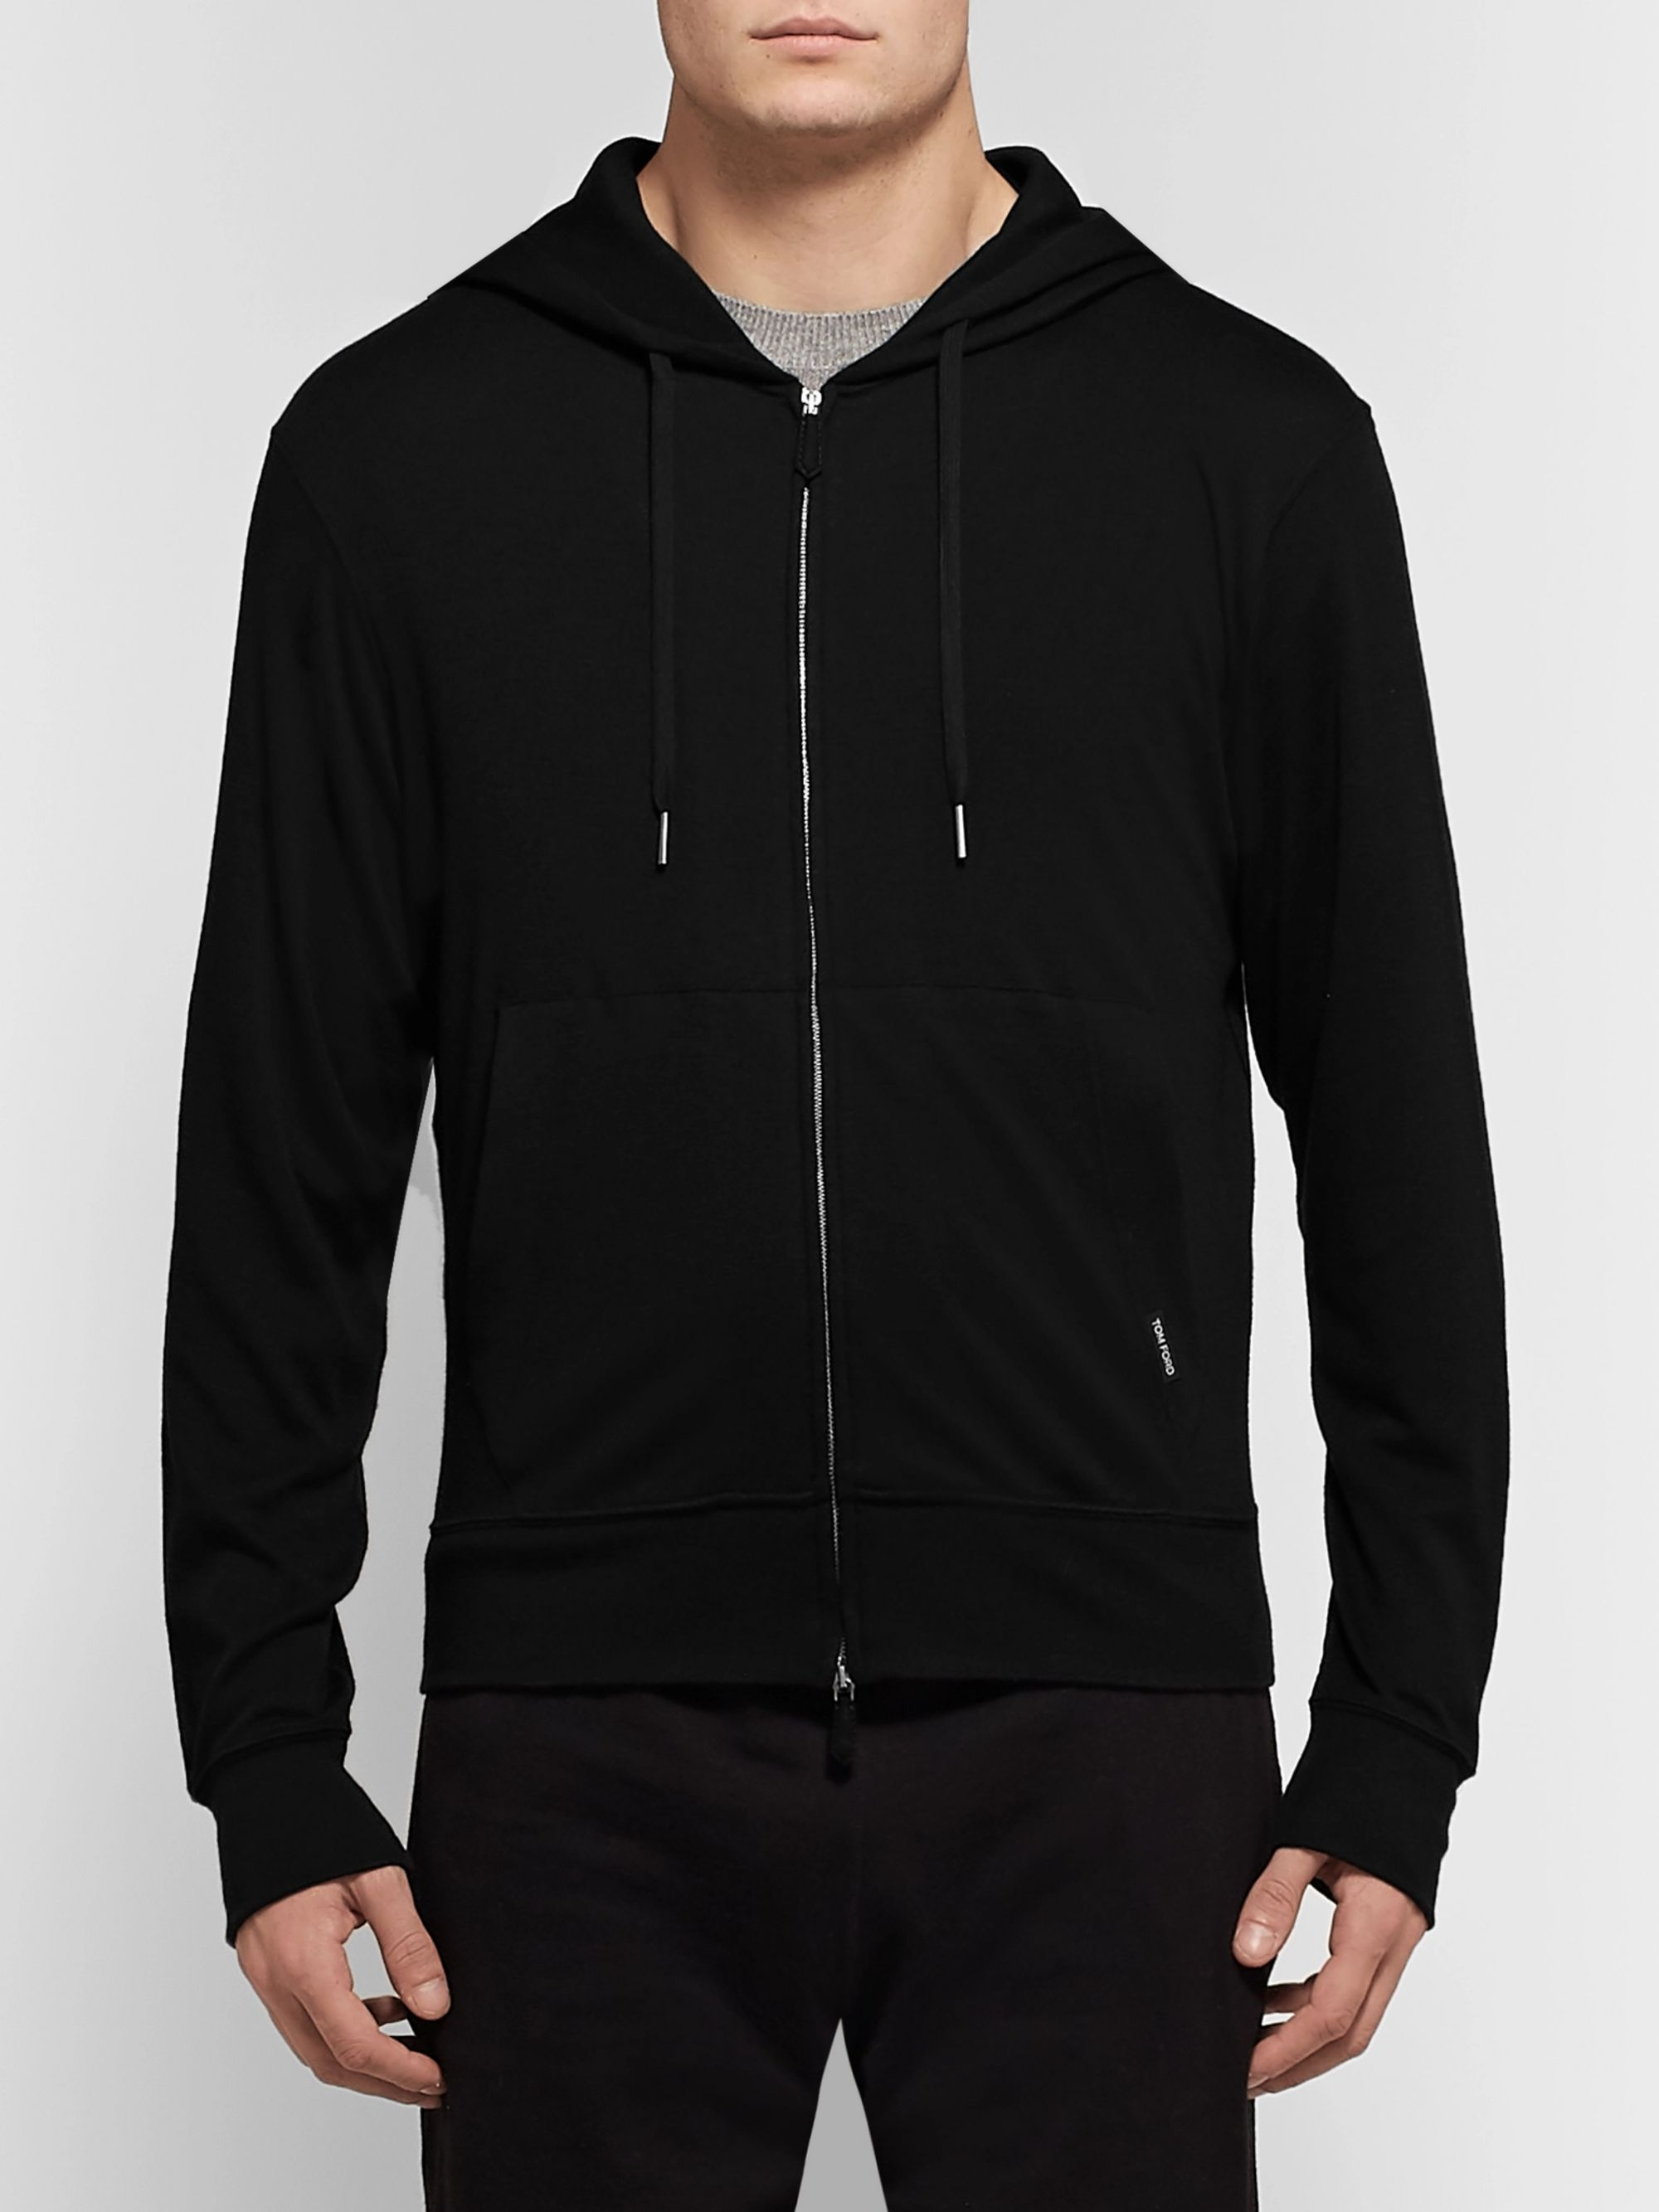 TOM FORD Cashmere Zip-Up Hoodie